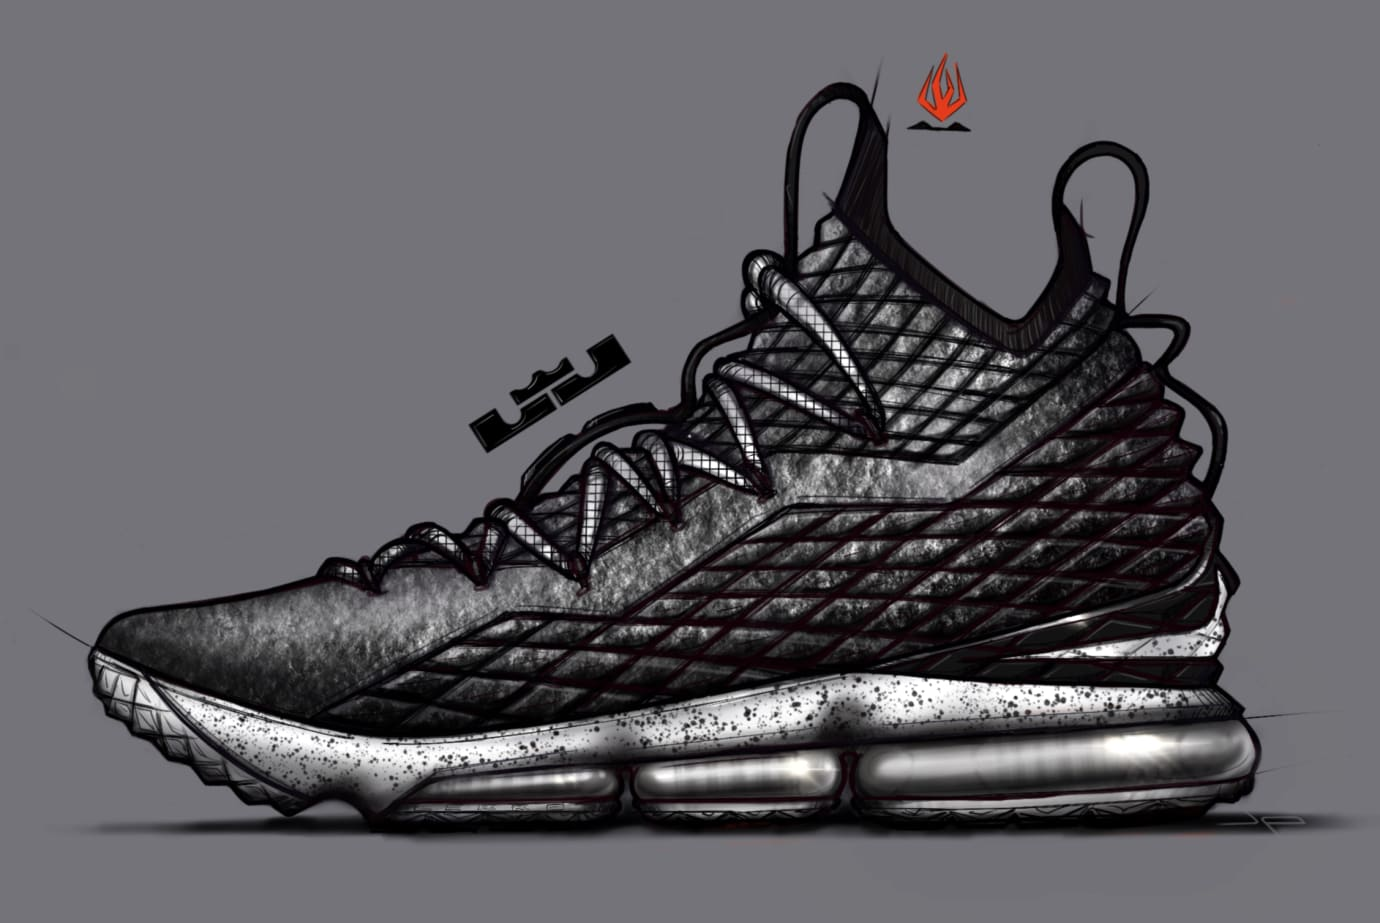 Nike LeBron 15 'Ashes' Sketch